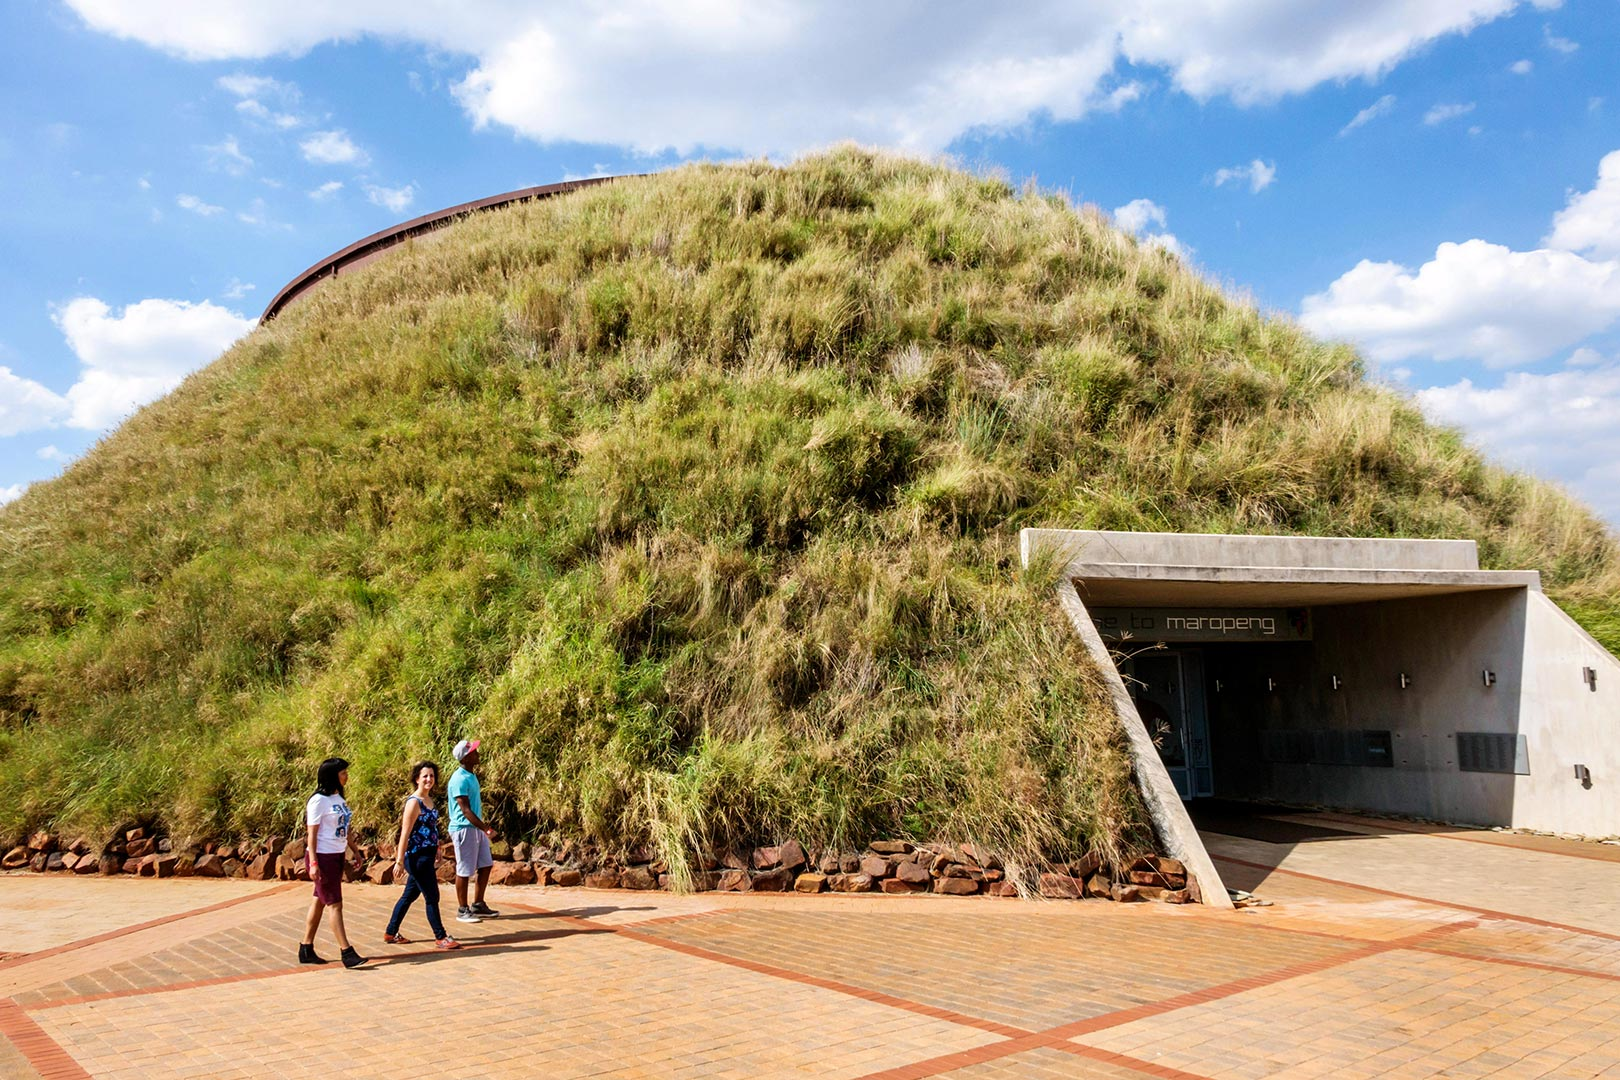 Picture of people at the cradle of humankind visitor center africa